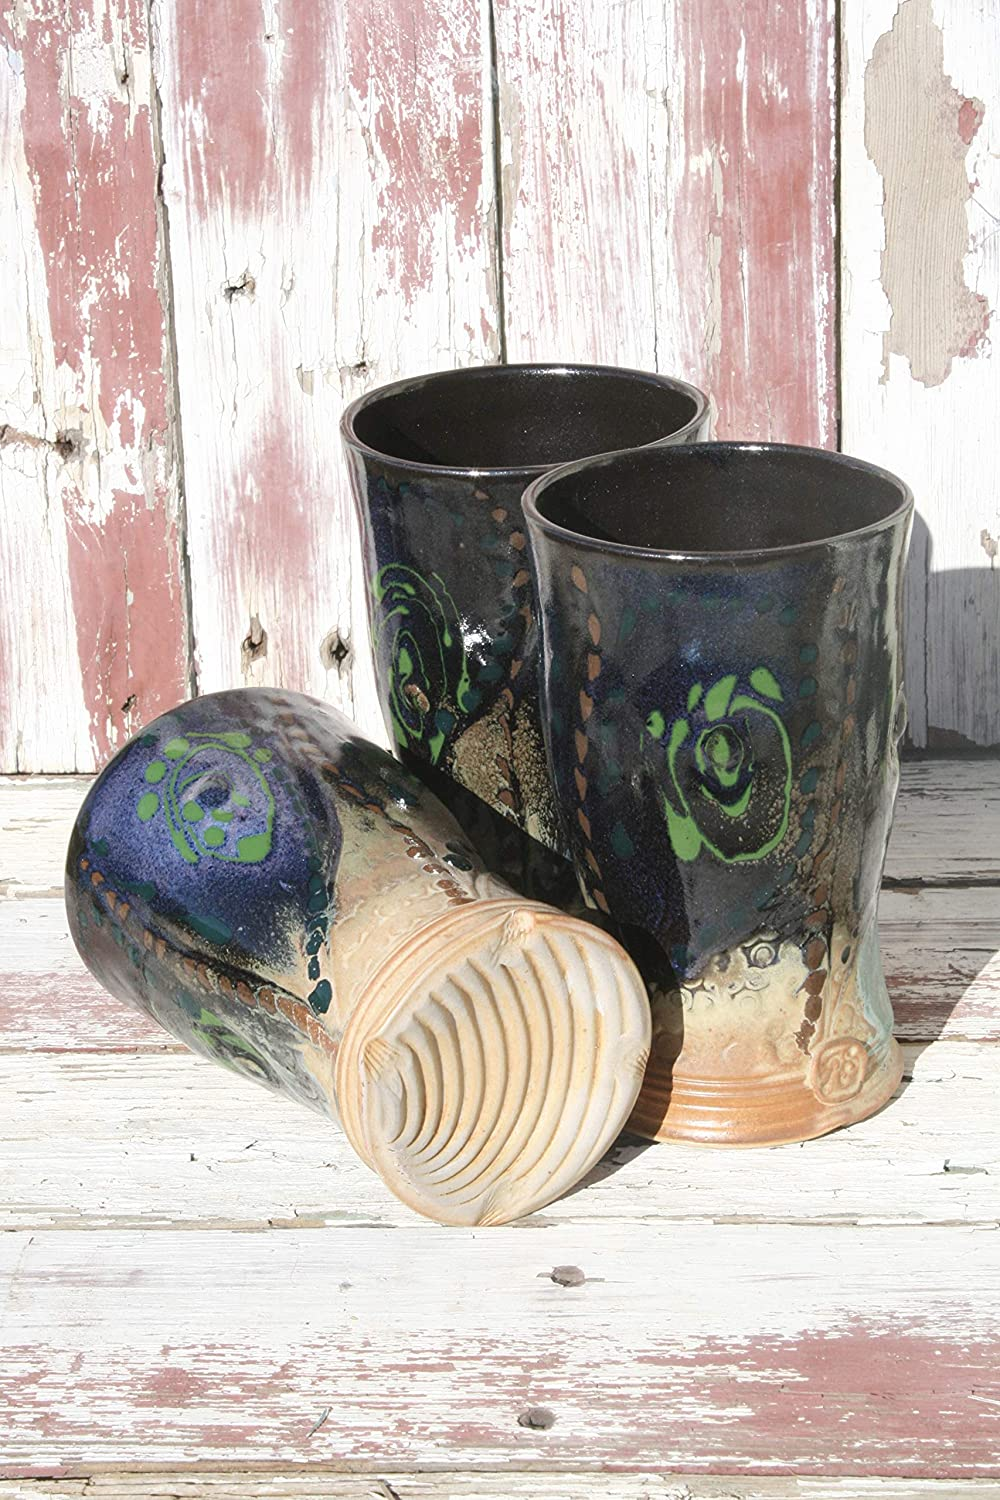 Handmade Tumblers Finely Crafted Cocktail Cups One Unique Black to Gold Ceramic Glass #15 Wheel Thrown Pottery Glasses